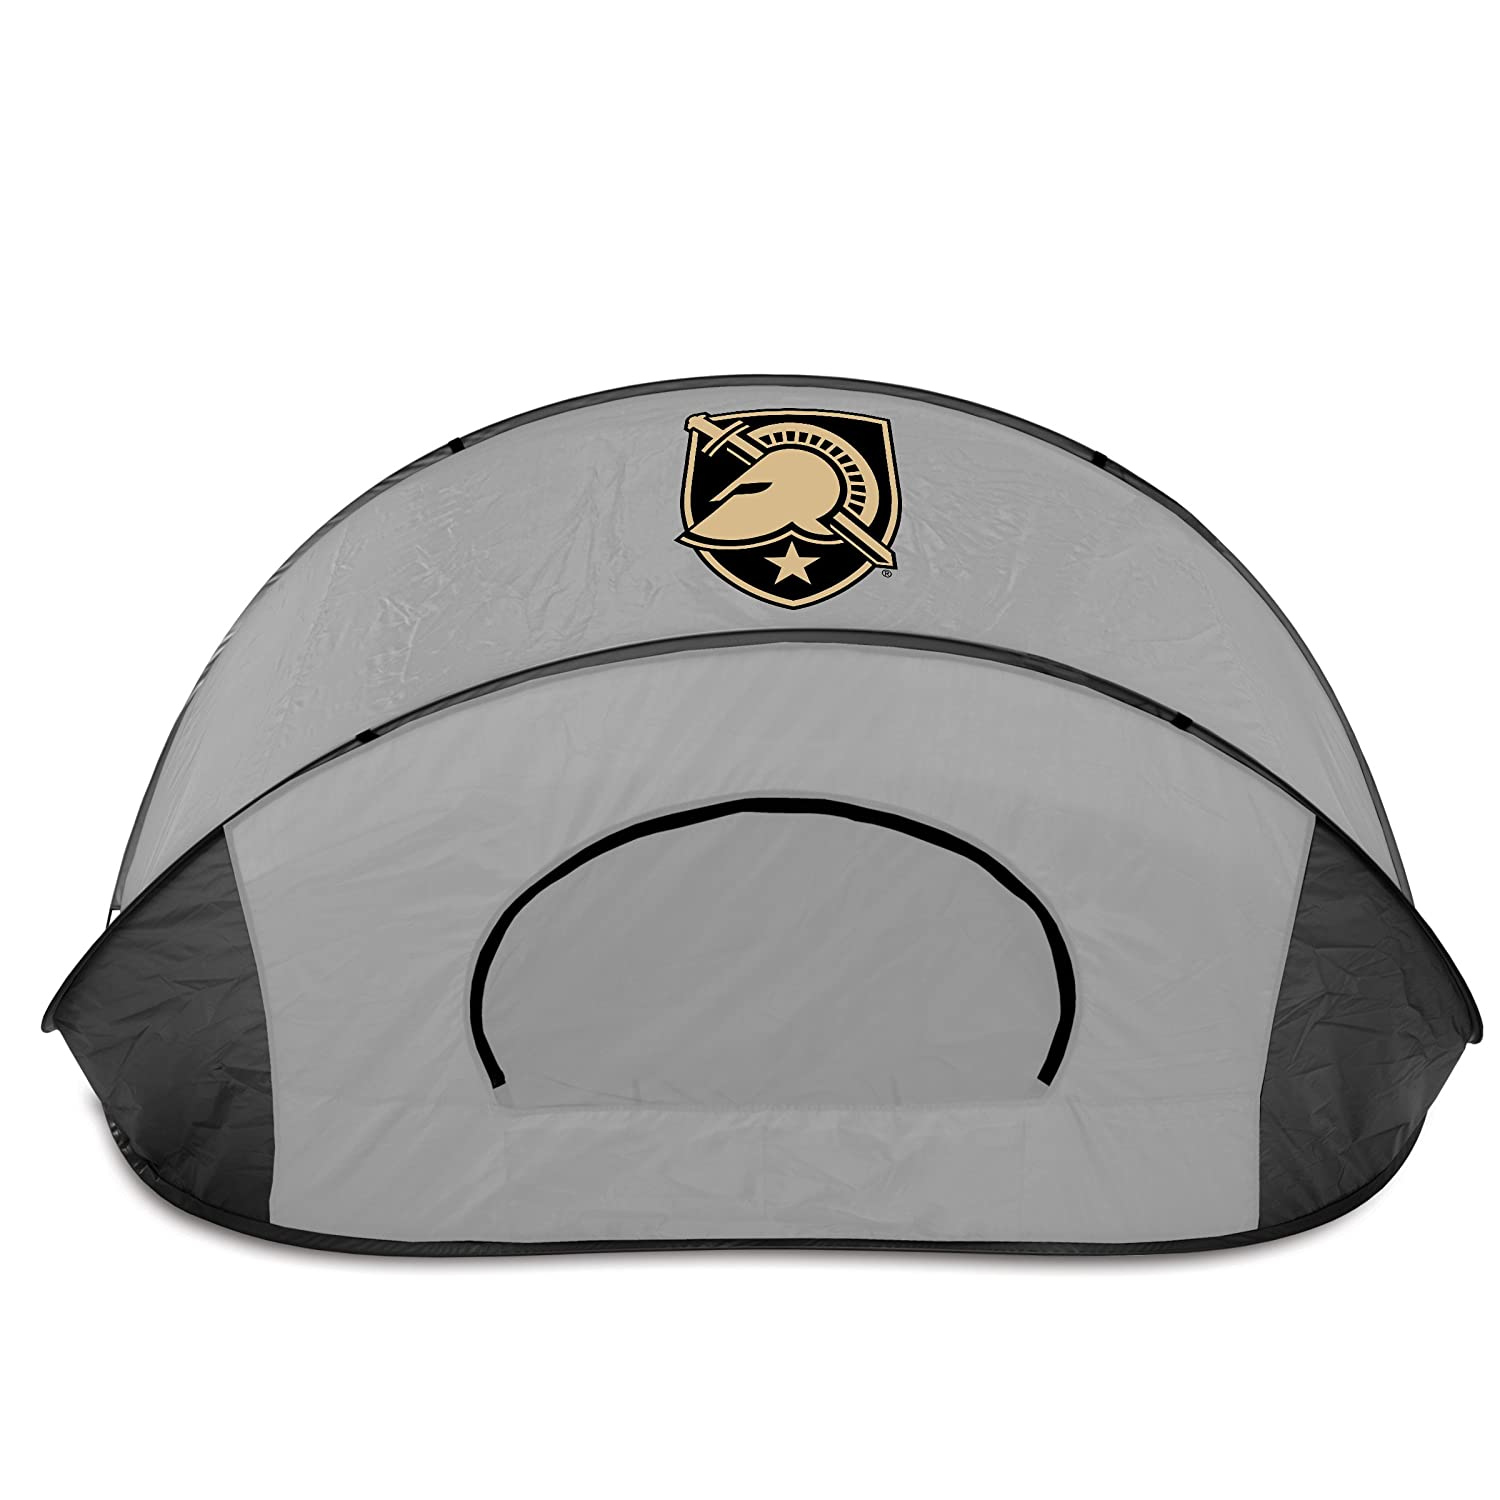 NCAA Army-US Military Academy Black Knights Manta Portable Pop-Up Sun/Wind Shelter by Picnic Time   B00AAVH4GM